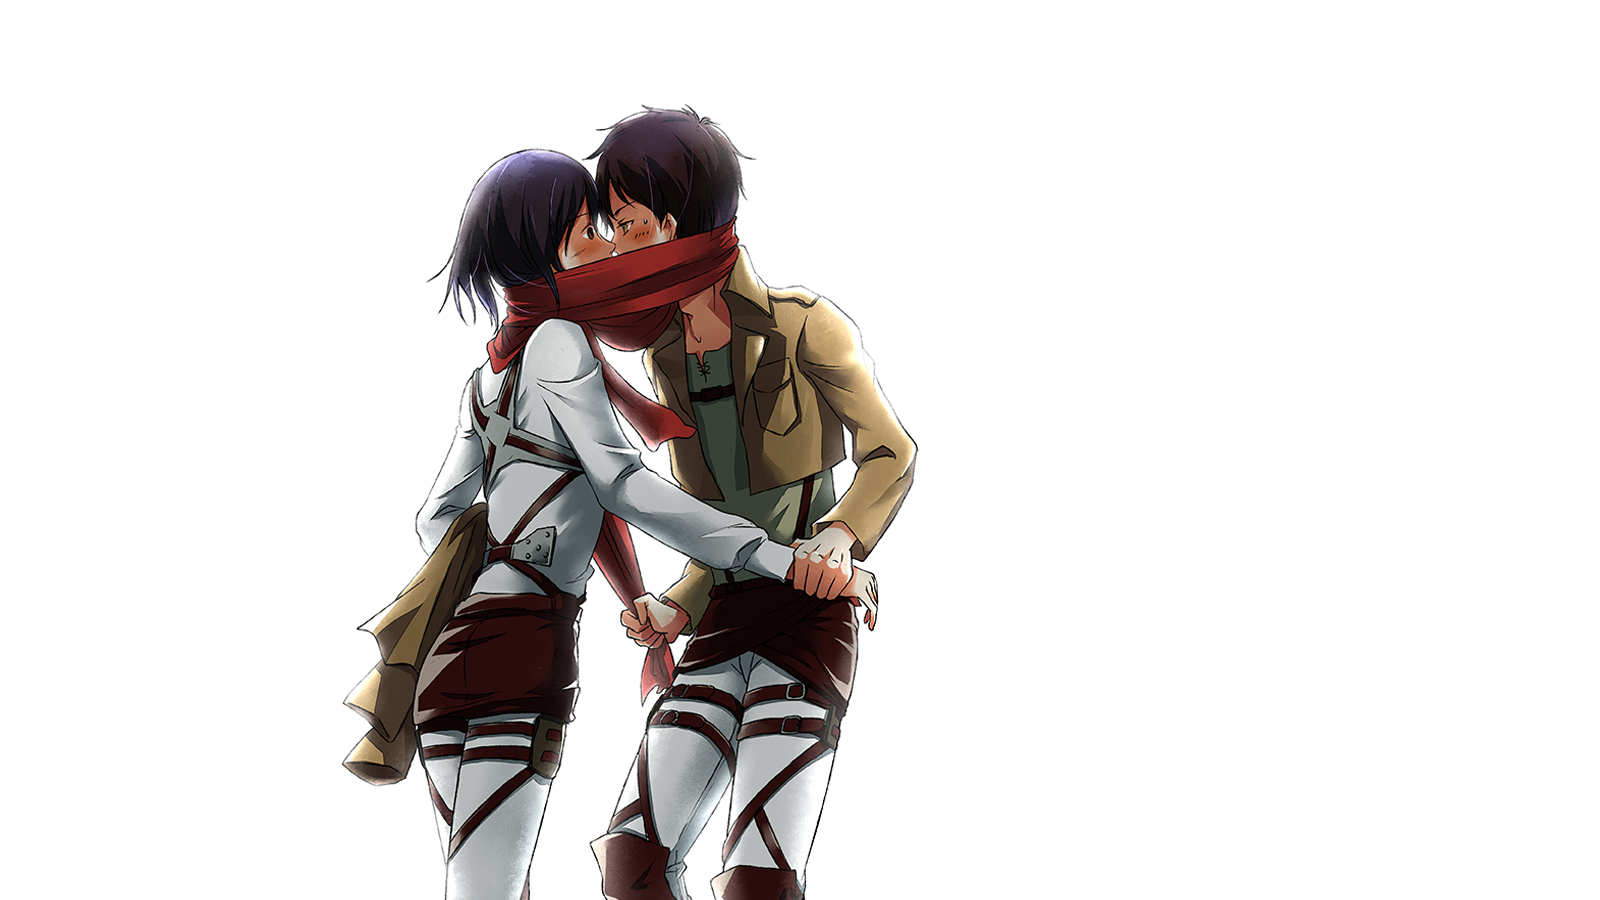 Free Download Attack On Titan Shingeki No Kyojin Mikasa Ackerman Eren Jaeger Kissing 1600x900 For Your Desktop Mobile Tablet Explore 49 Attack On Titan Mikasa Wallpaper Attack On Titan